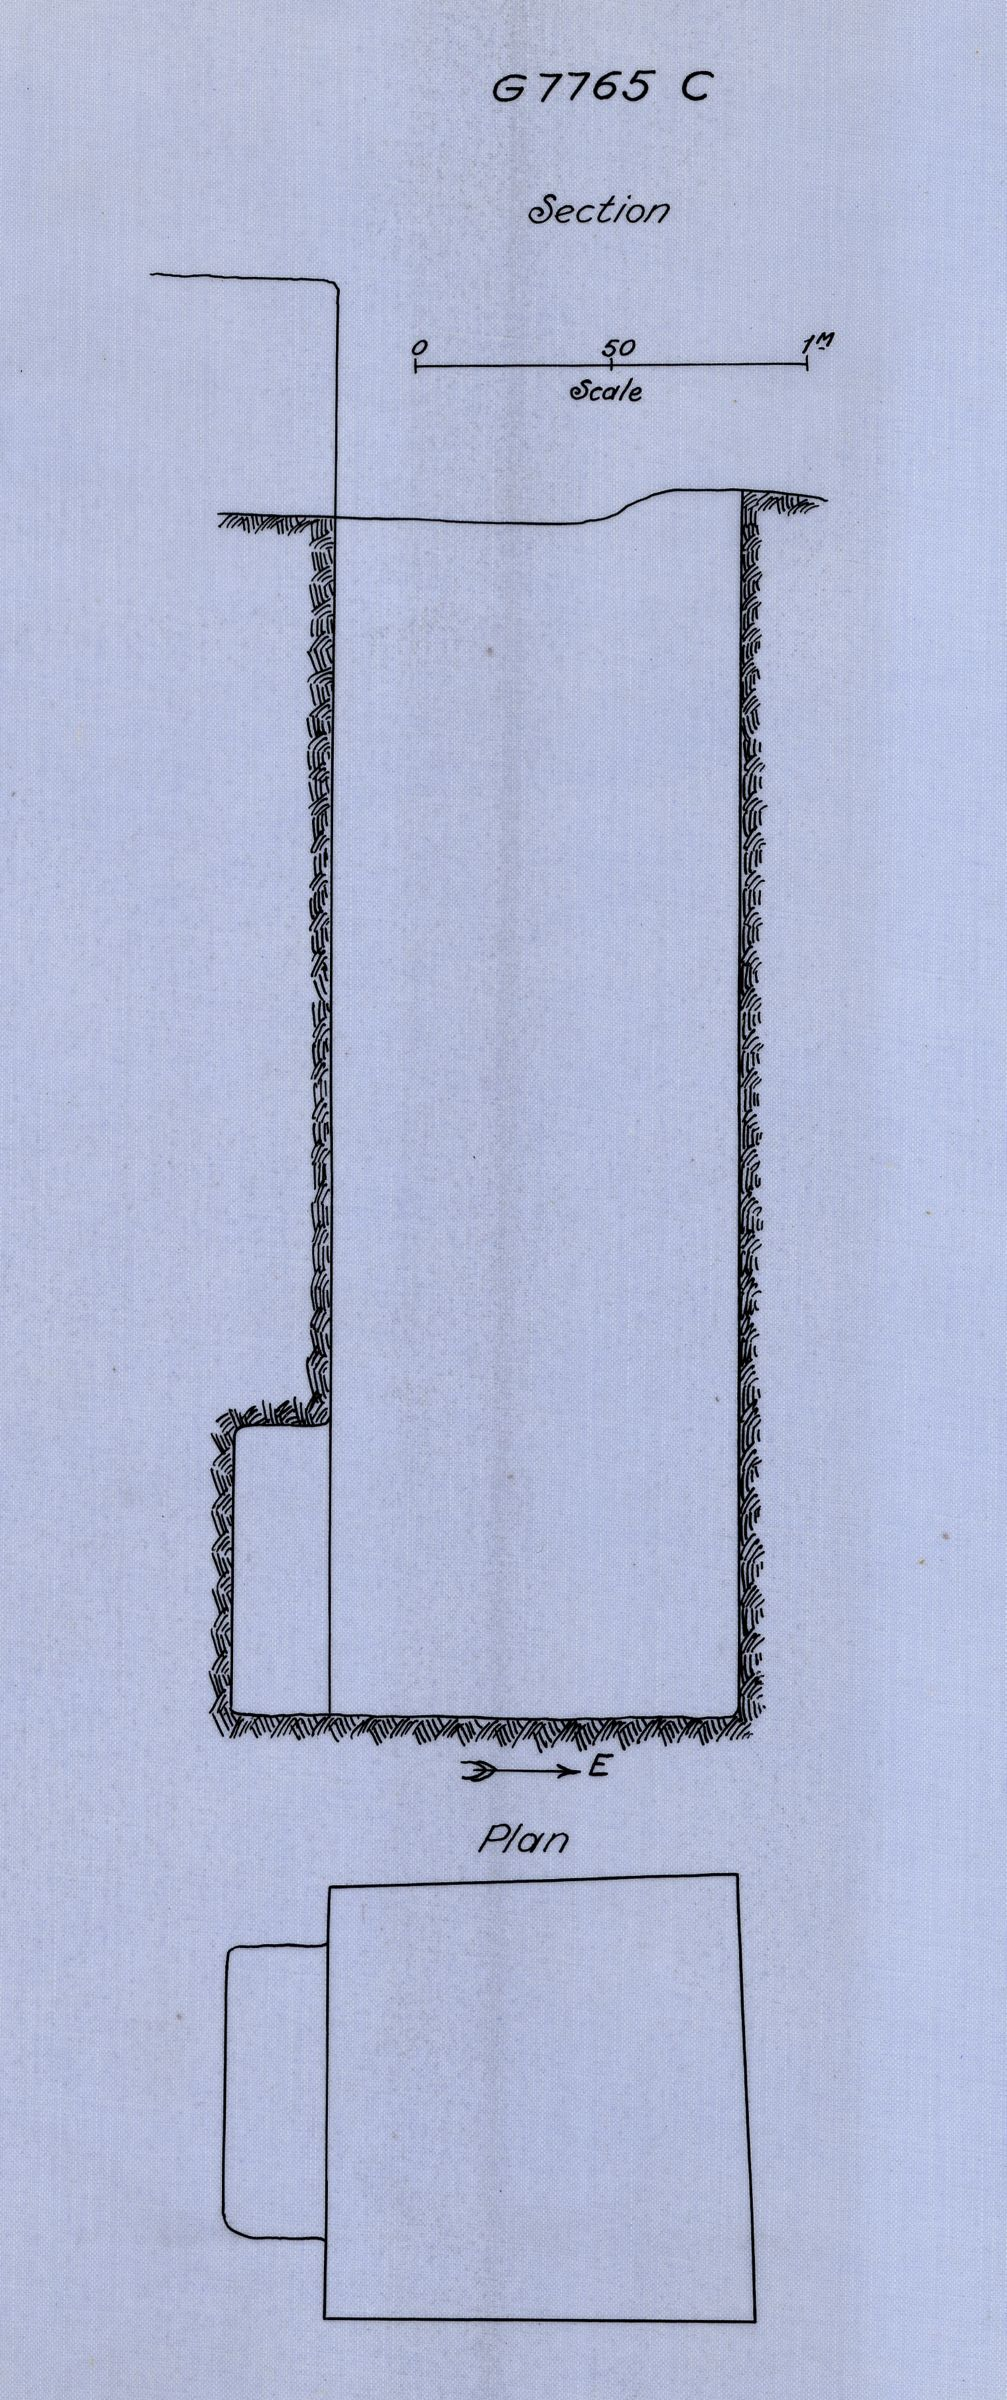 Maps and plans: G 7765, Shaft C